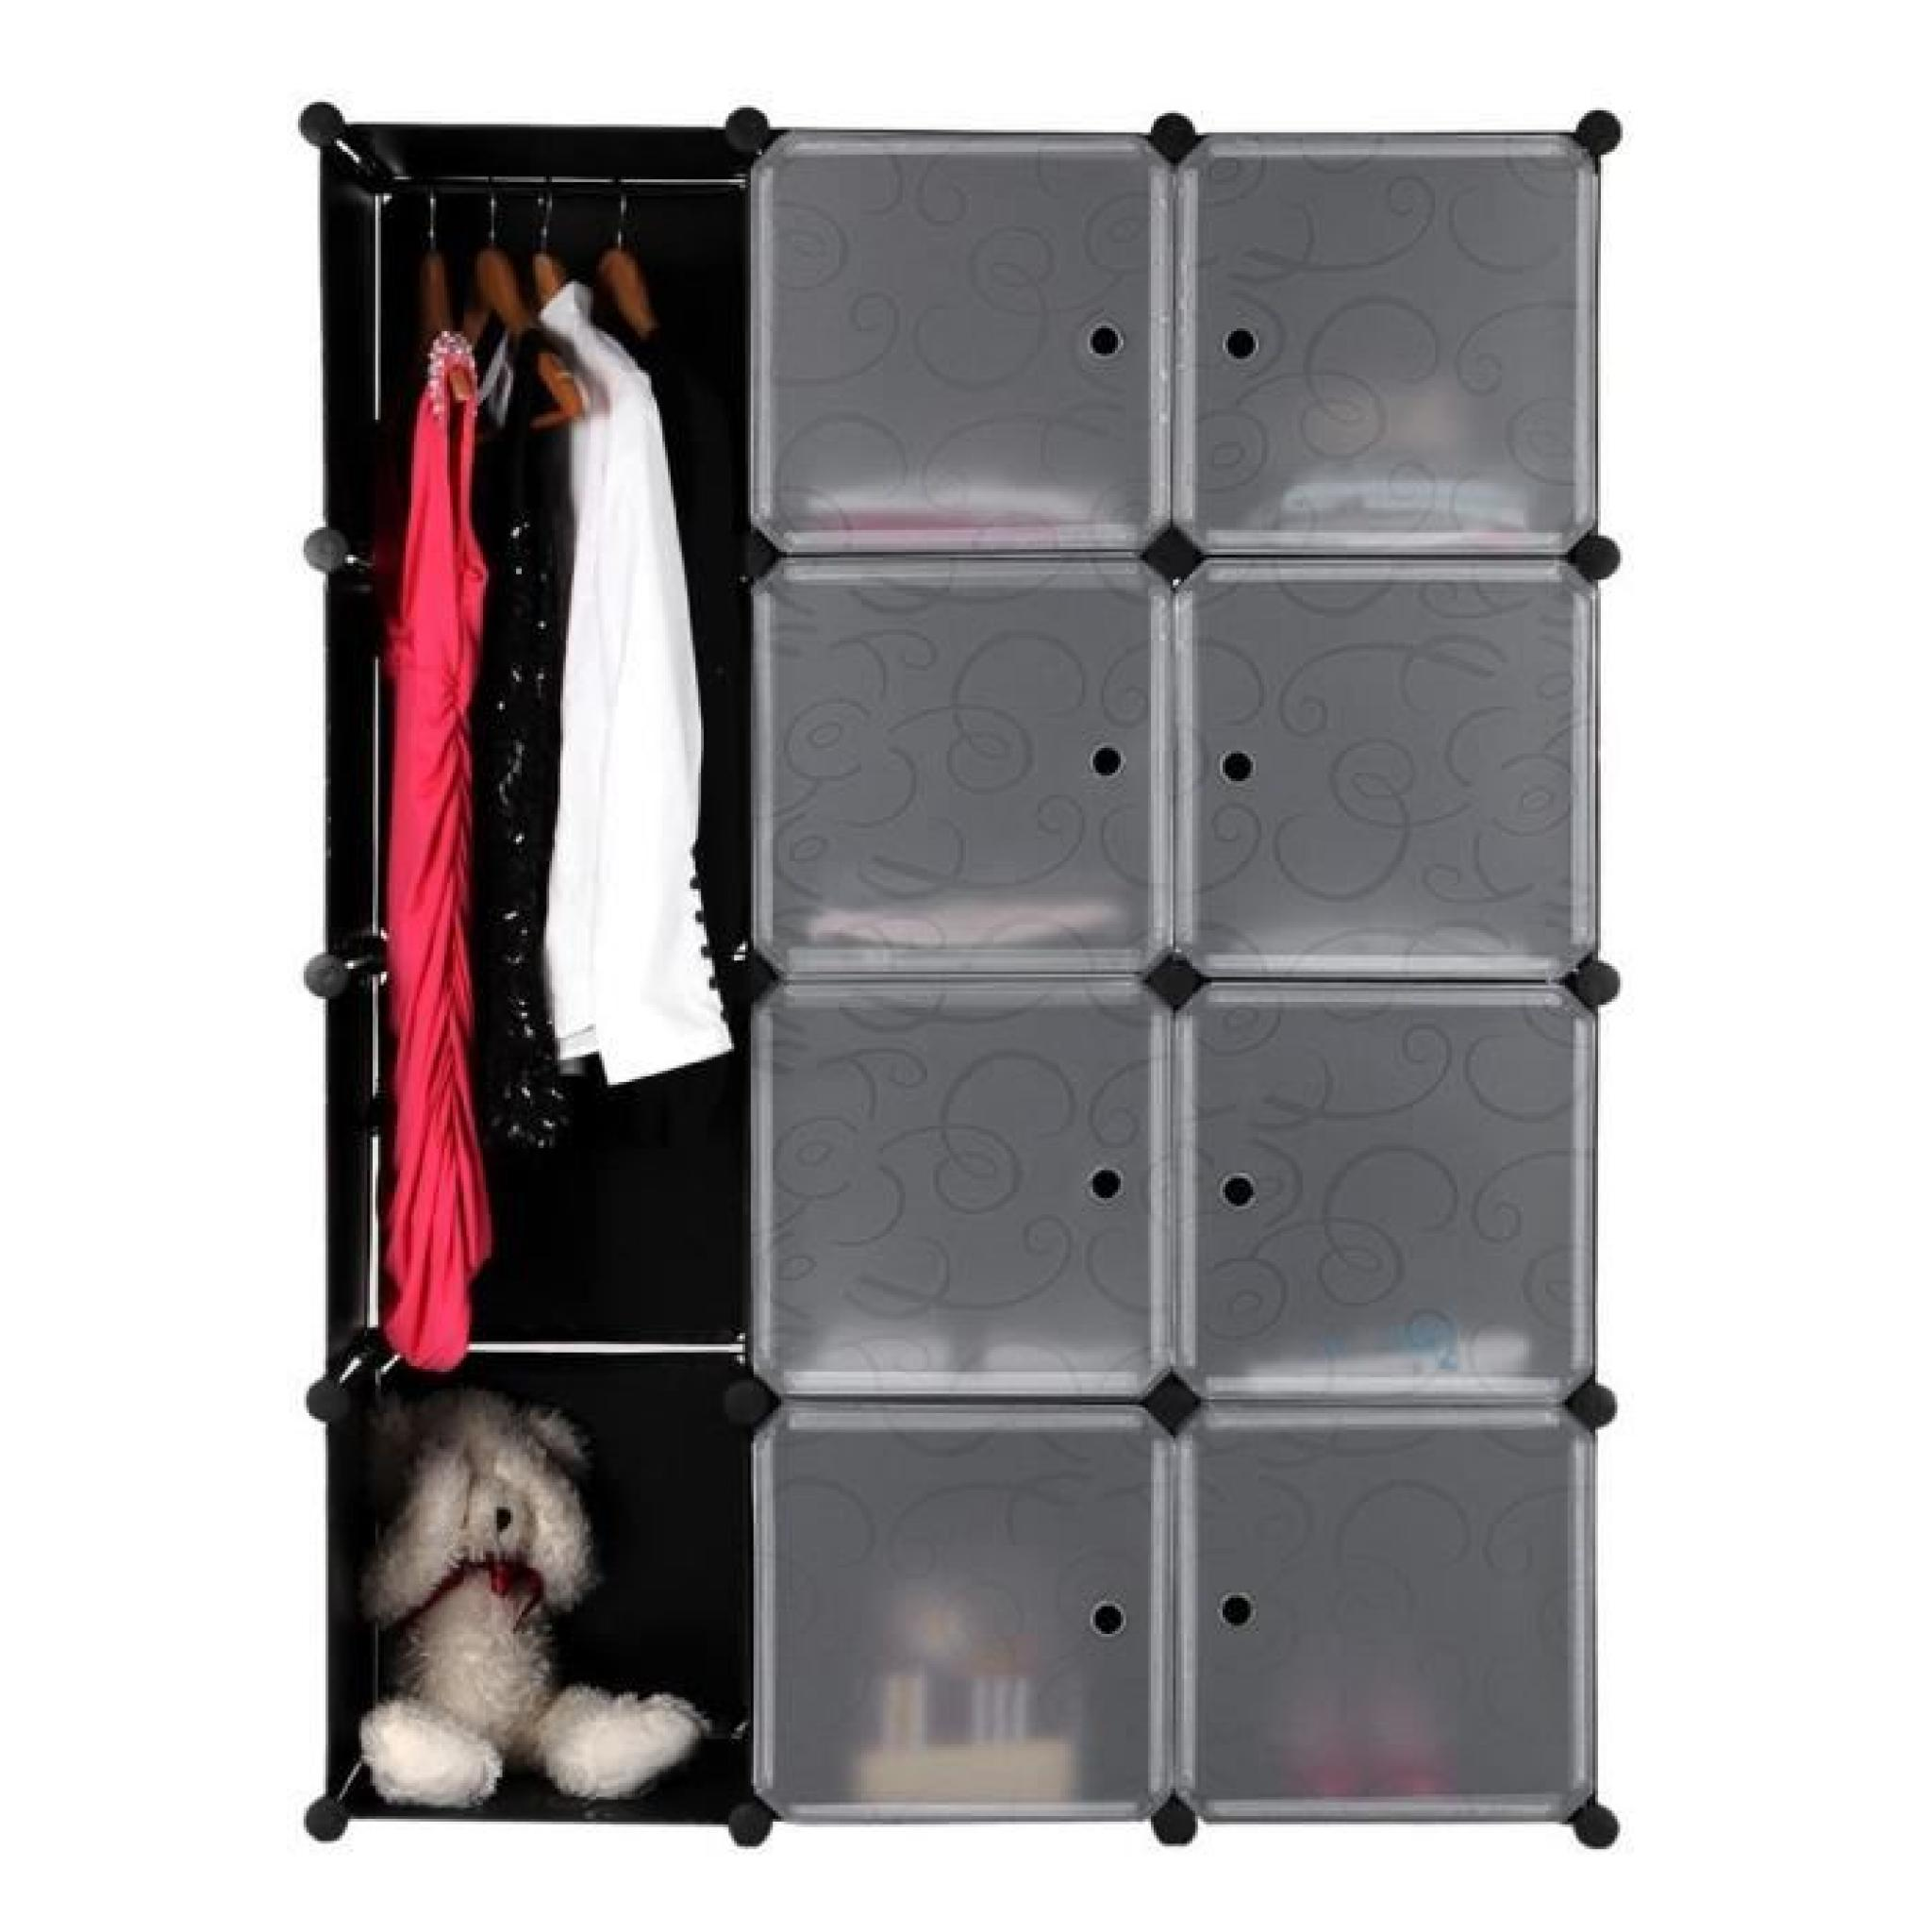 armoire rangement etagere achat vente armoire de chambre. Black Bedroom Furniture Sets. Home Design Ideas